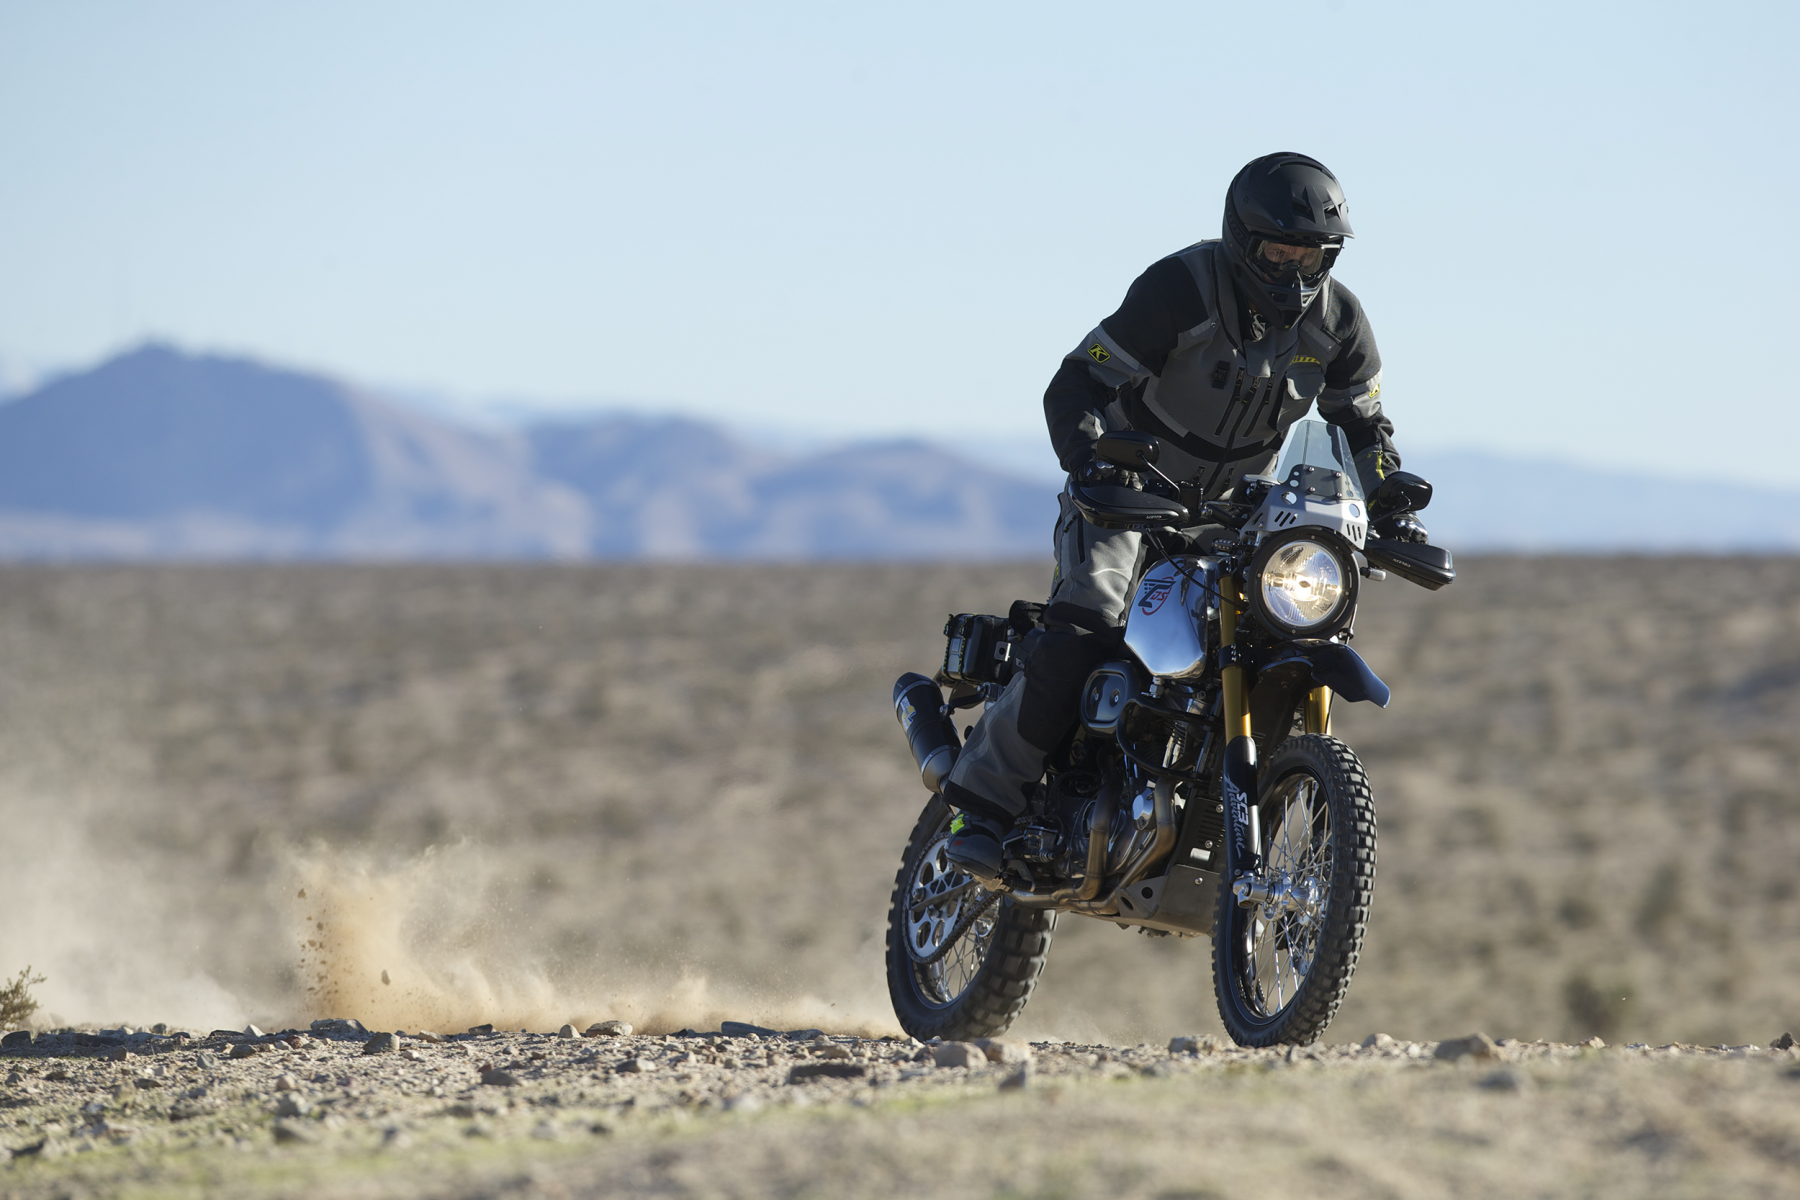 Jim Carducci on the SC3 Adventure in the Mojave Desert